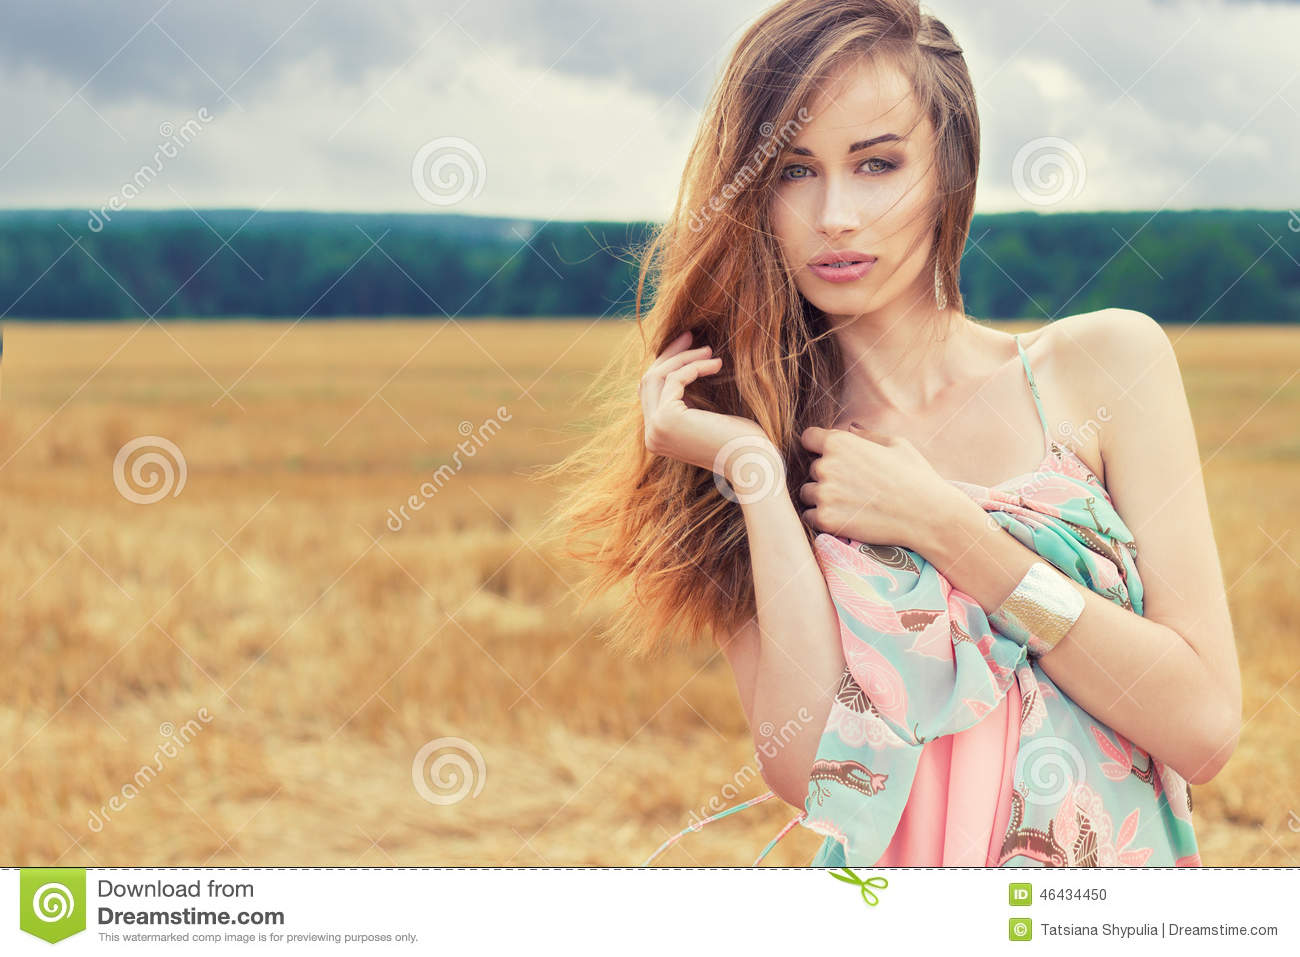 Beautiful romantic girl with red hair wearing a colored dress, the wind standing in the field on a cloudy summer day